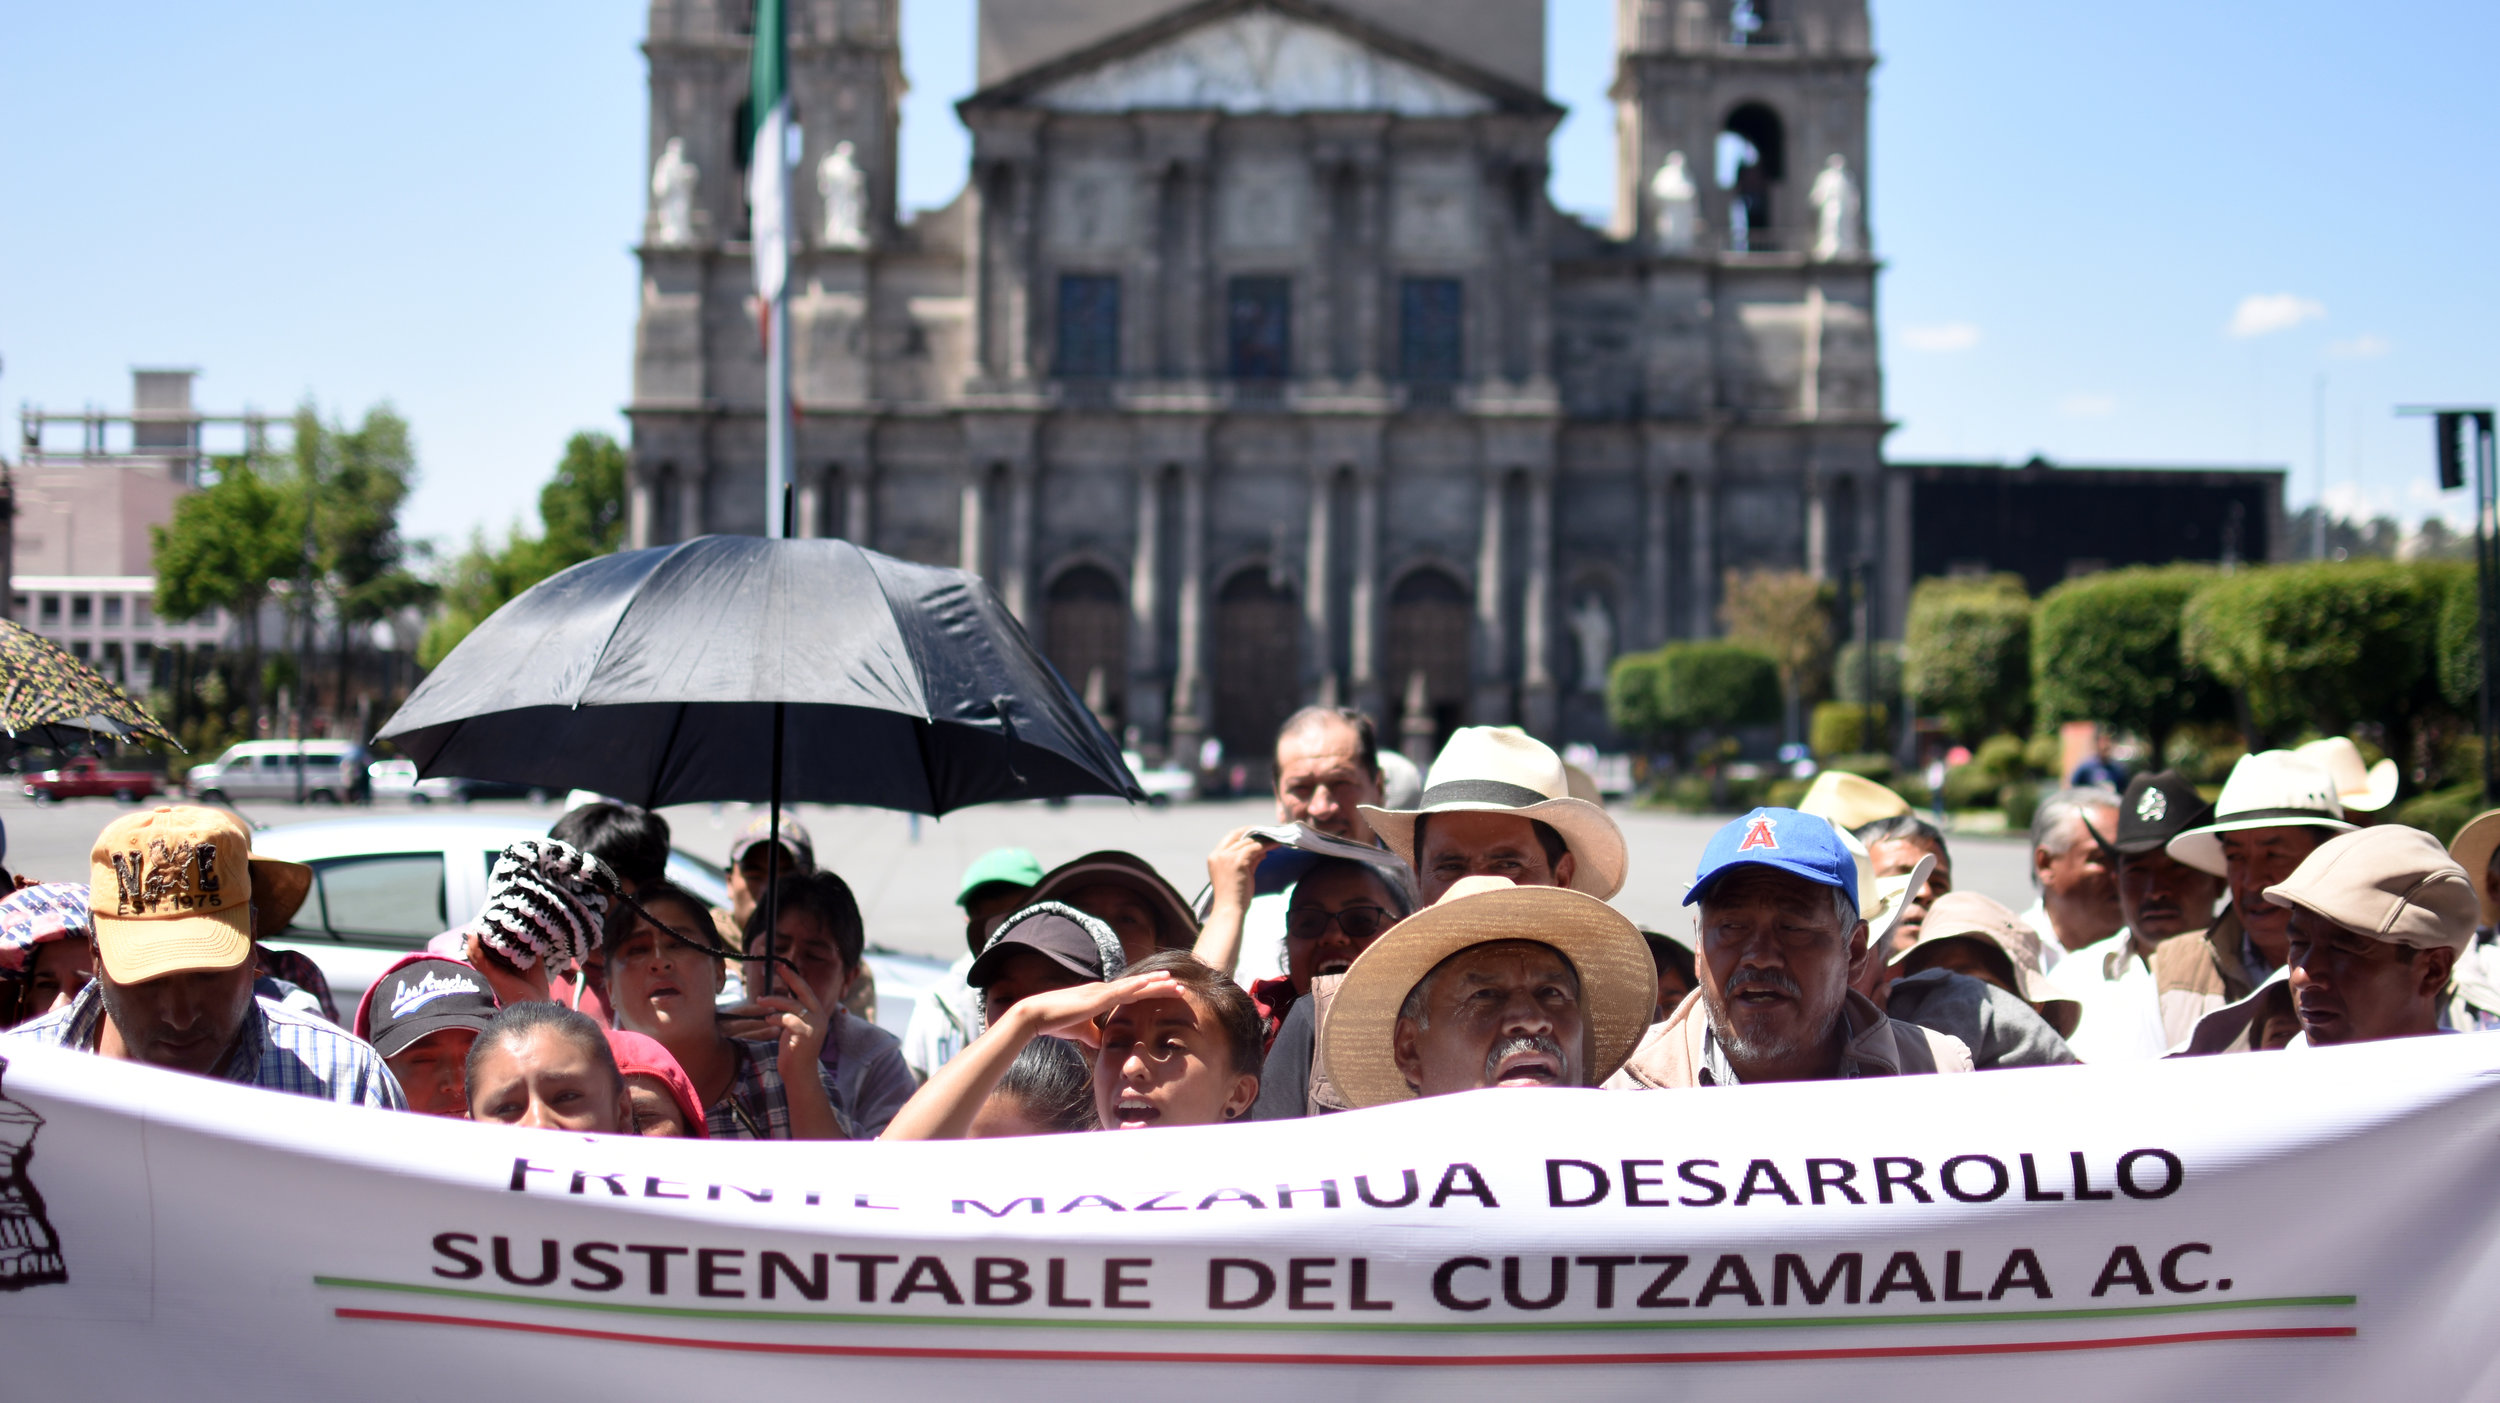 Members of the Mazahua Frente chant during a protest outside the governor's building in Toluca. The group demanded to meet with the governor to discuss their community needs.